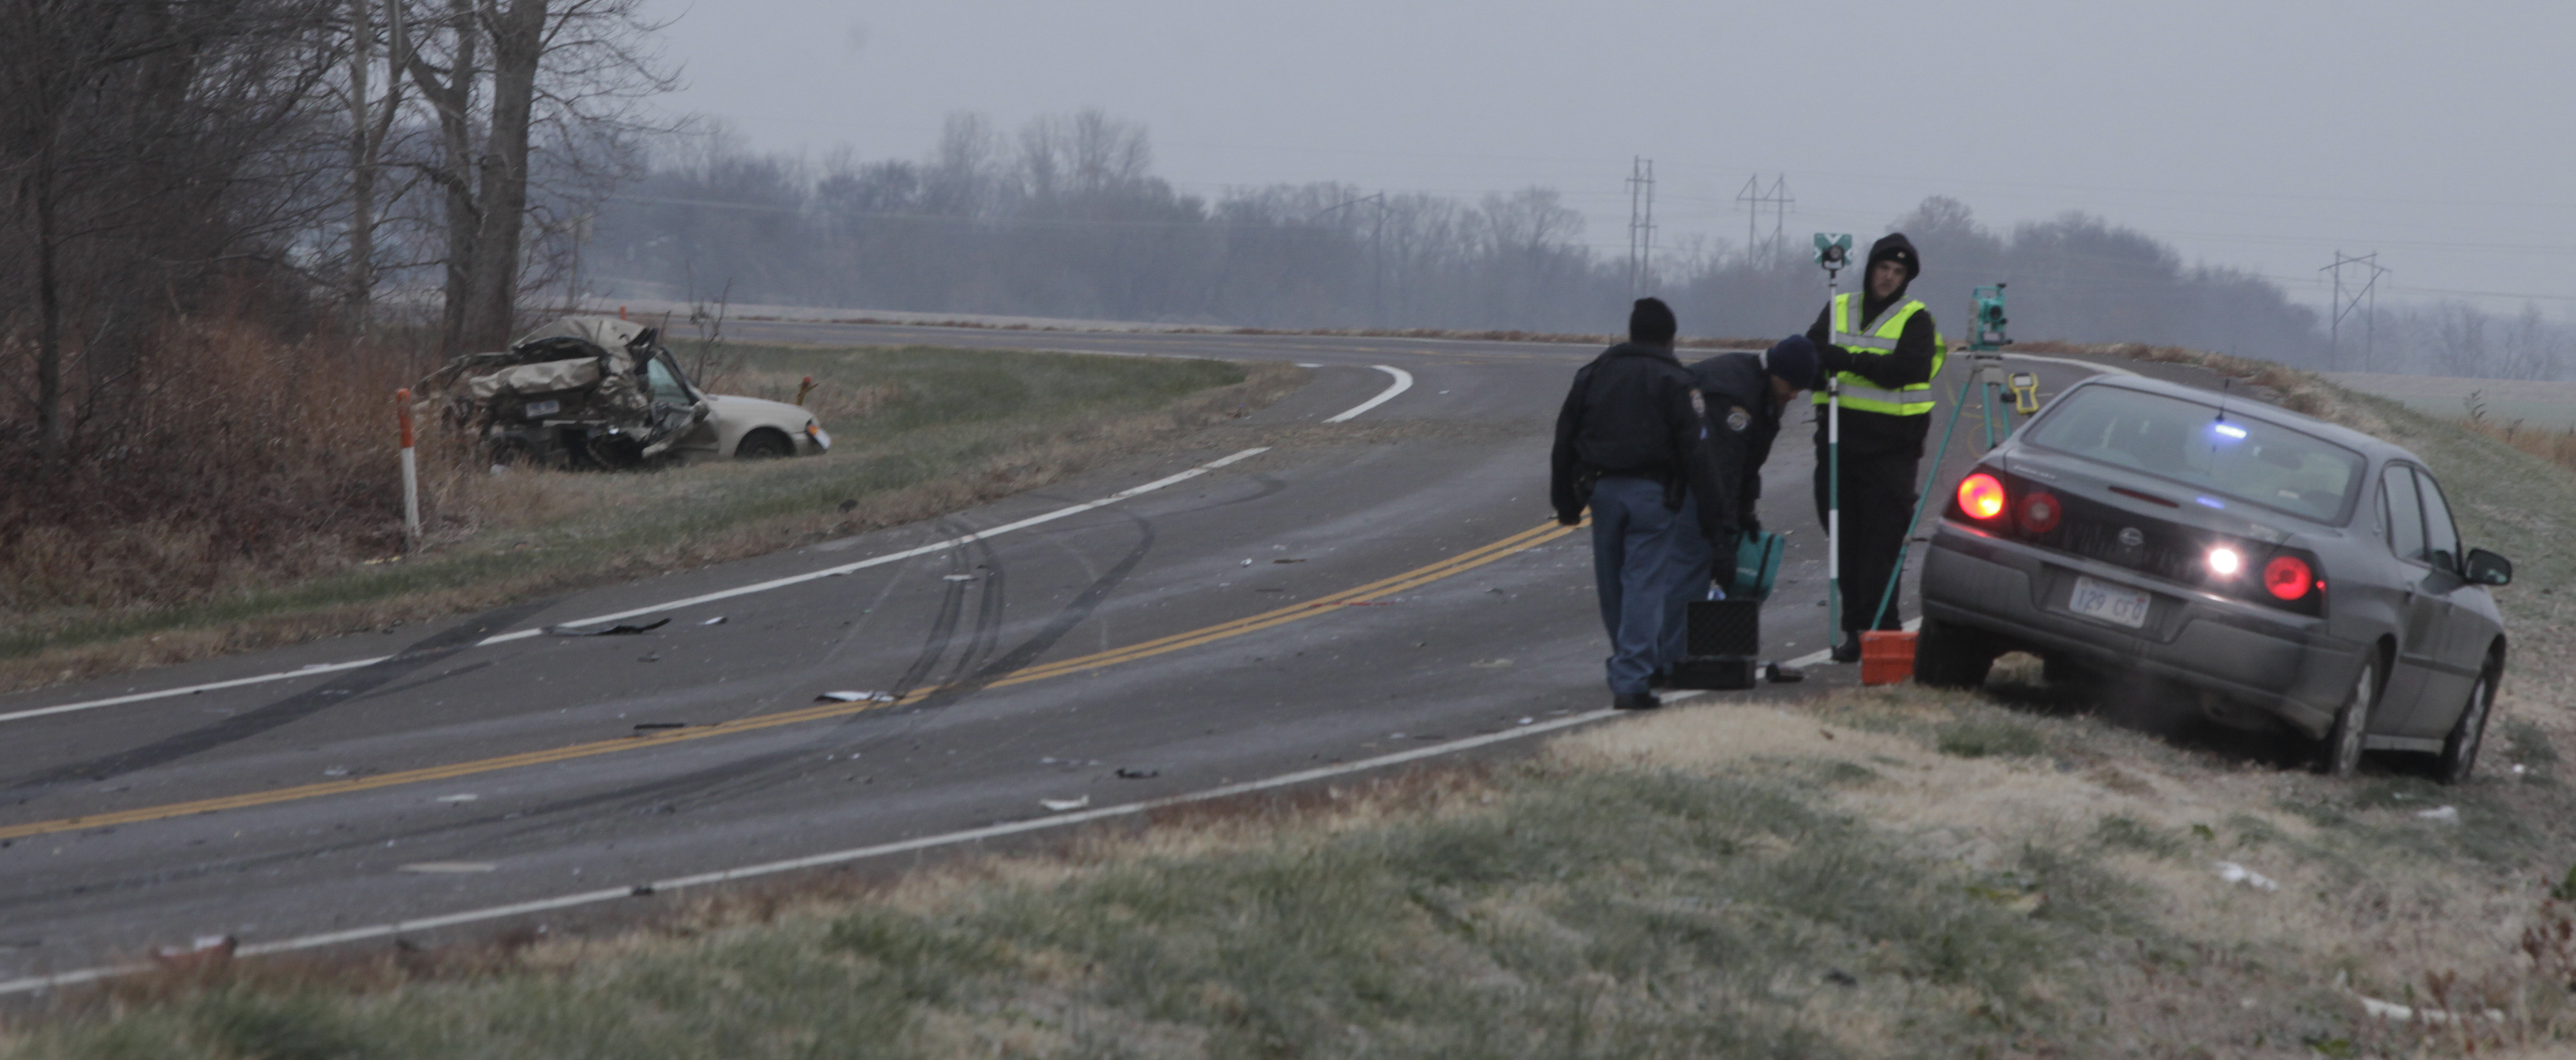 Charges likely to be filed Wednesday in connection with fatality